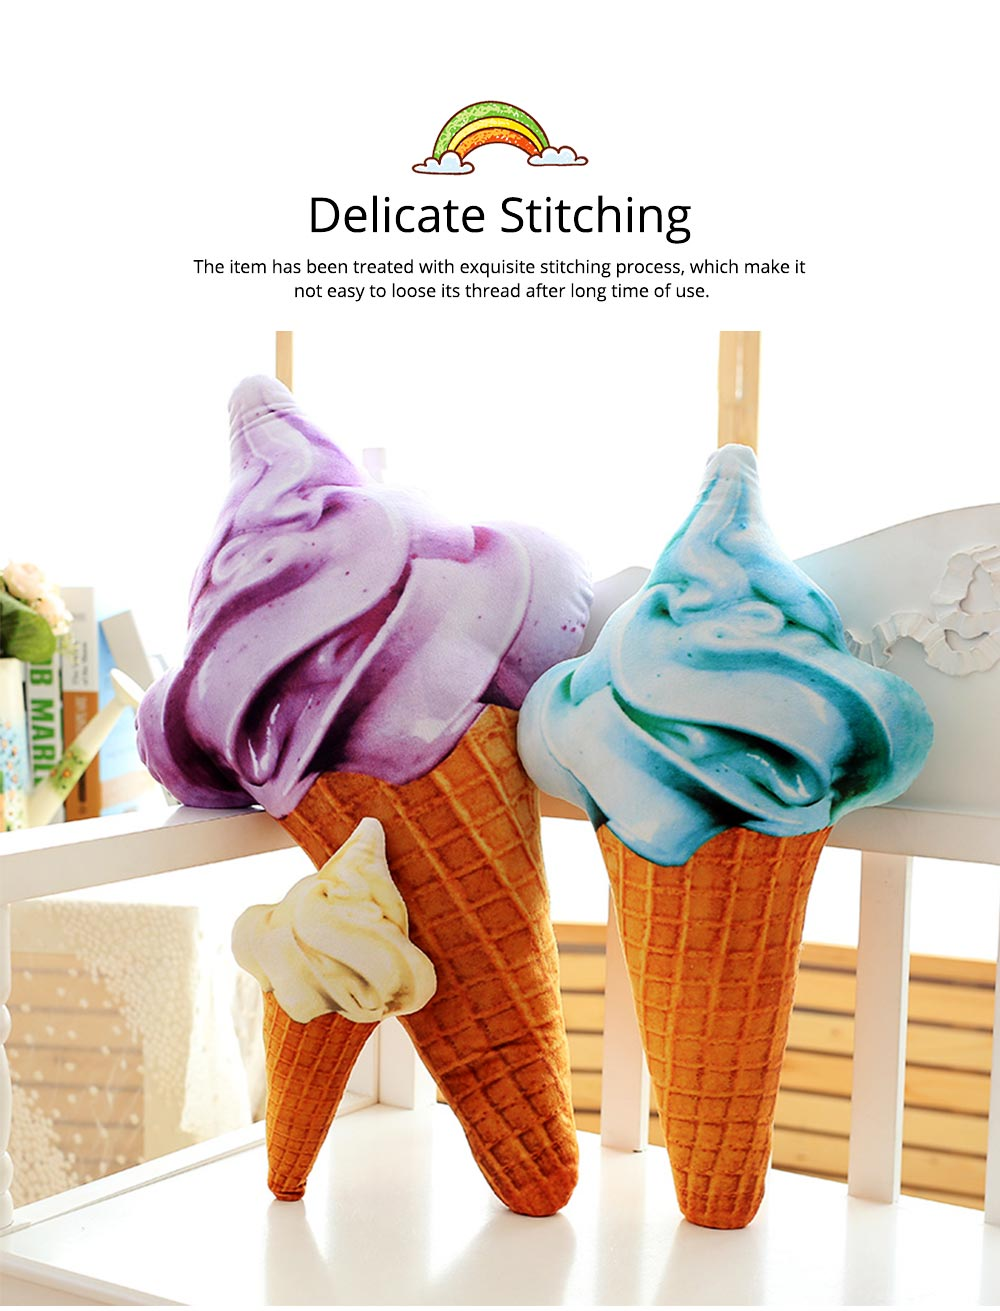 Cute Creative Life-like Ice Cream Model Bolster Toy, Elegant Simulation Pillow Doll Home Decoration Children Present Gift 4